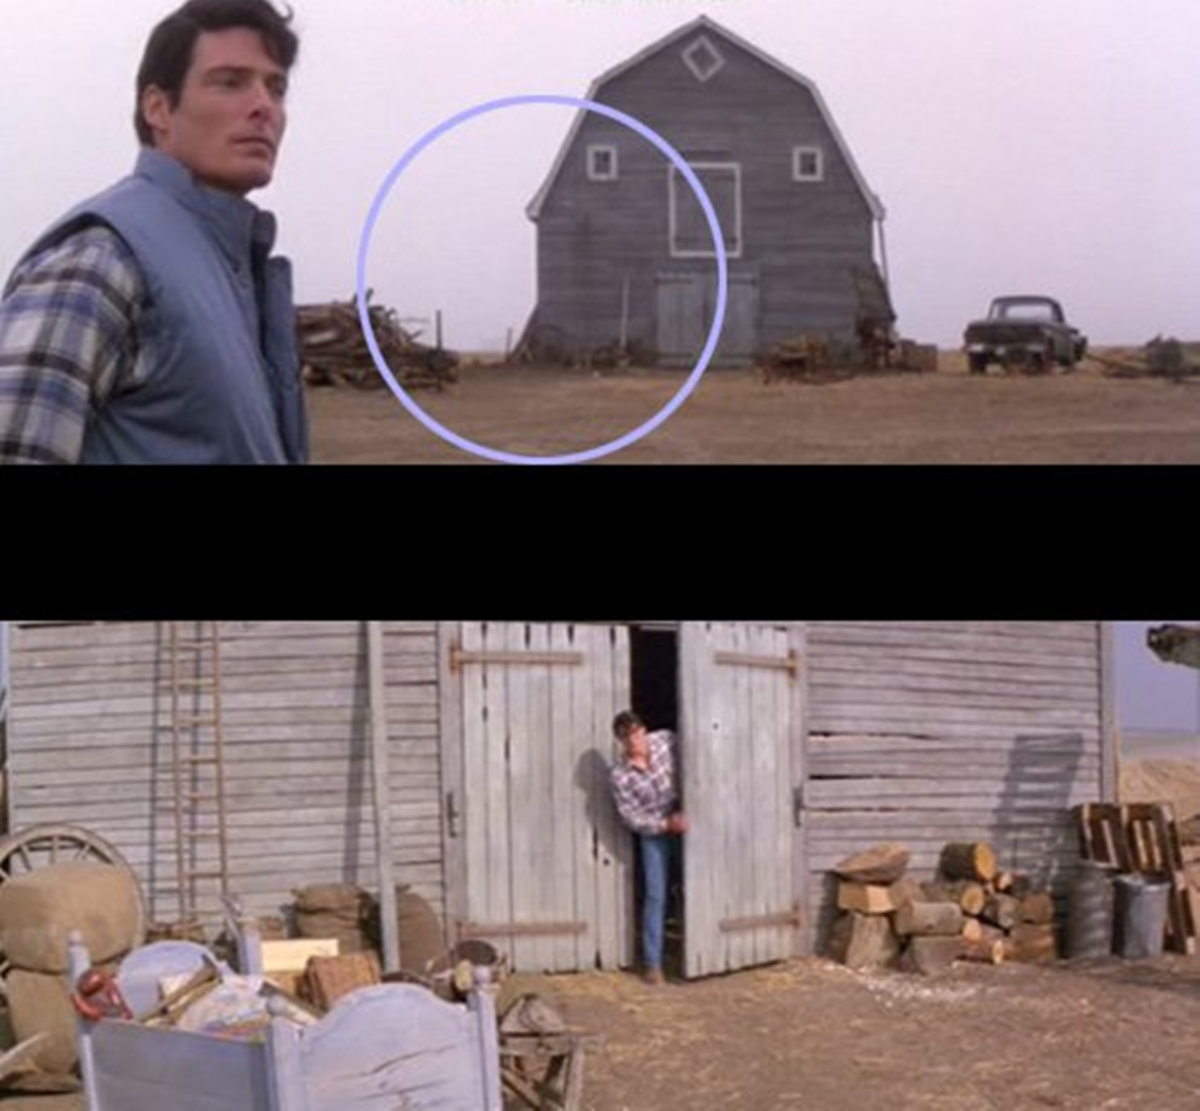 12 9 12 Things You May Have Missed In Christopher Reeve's Superman Films